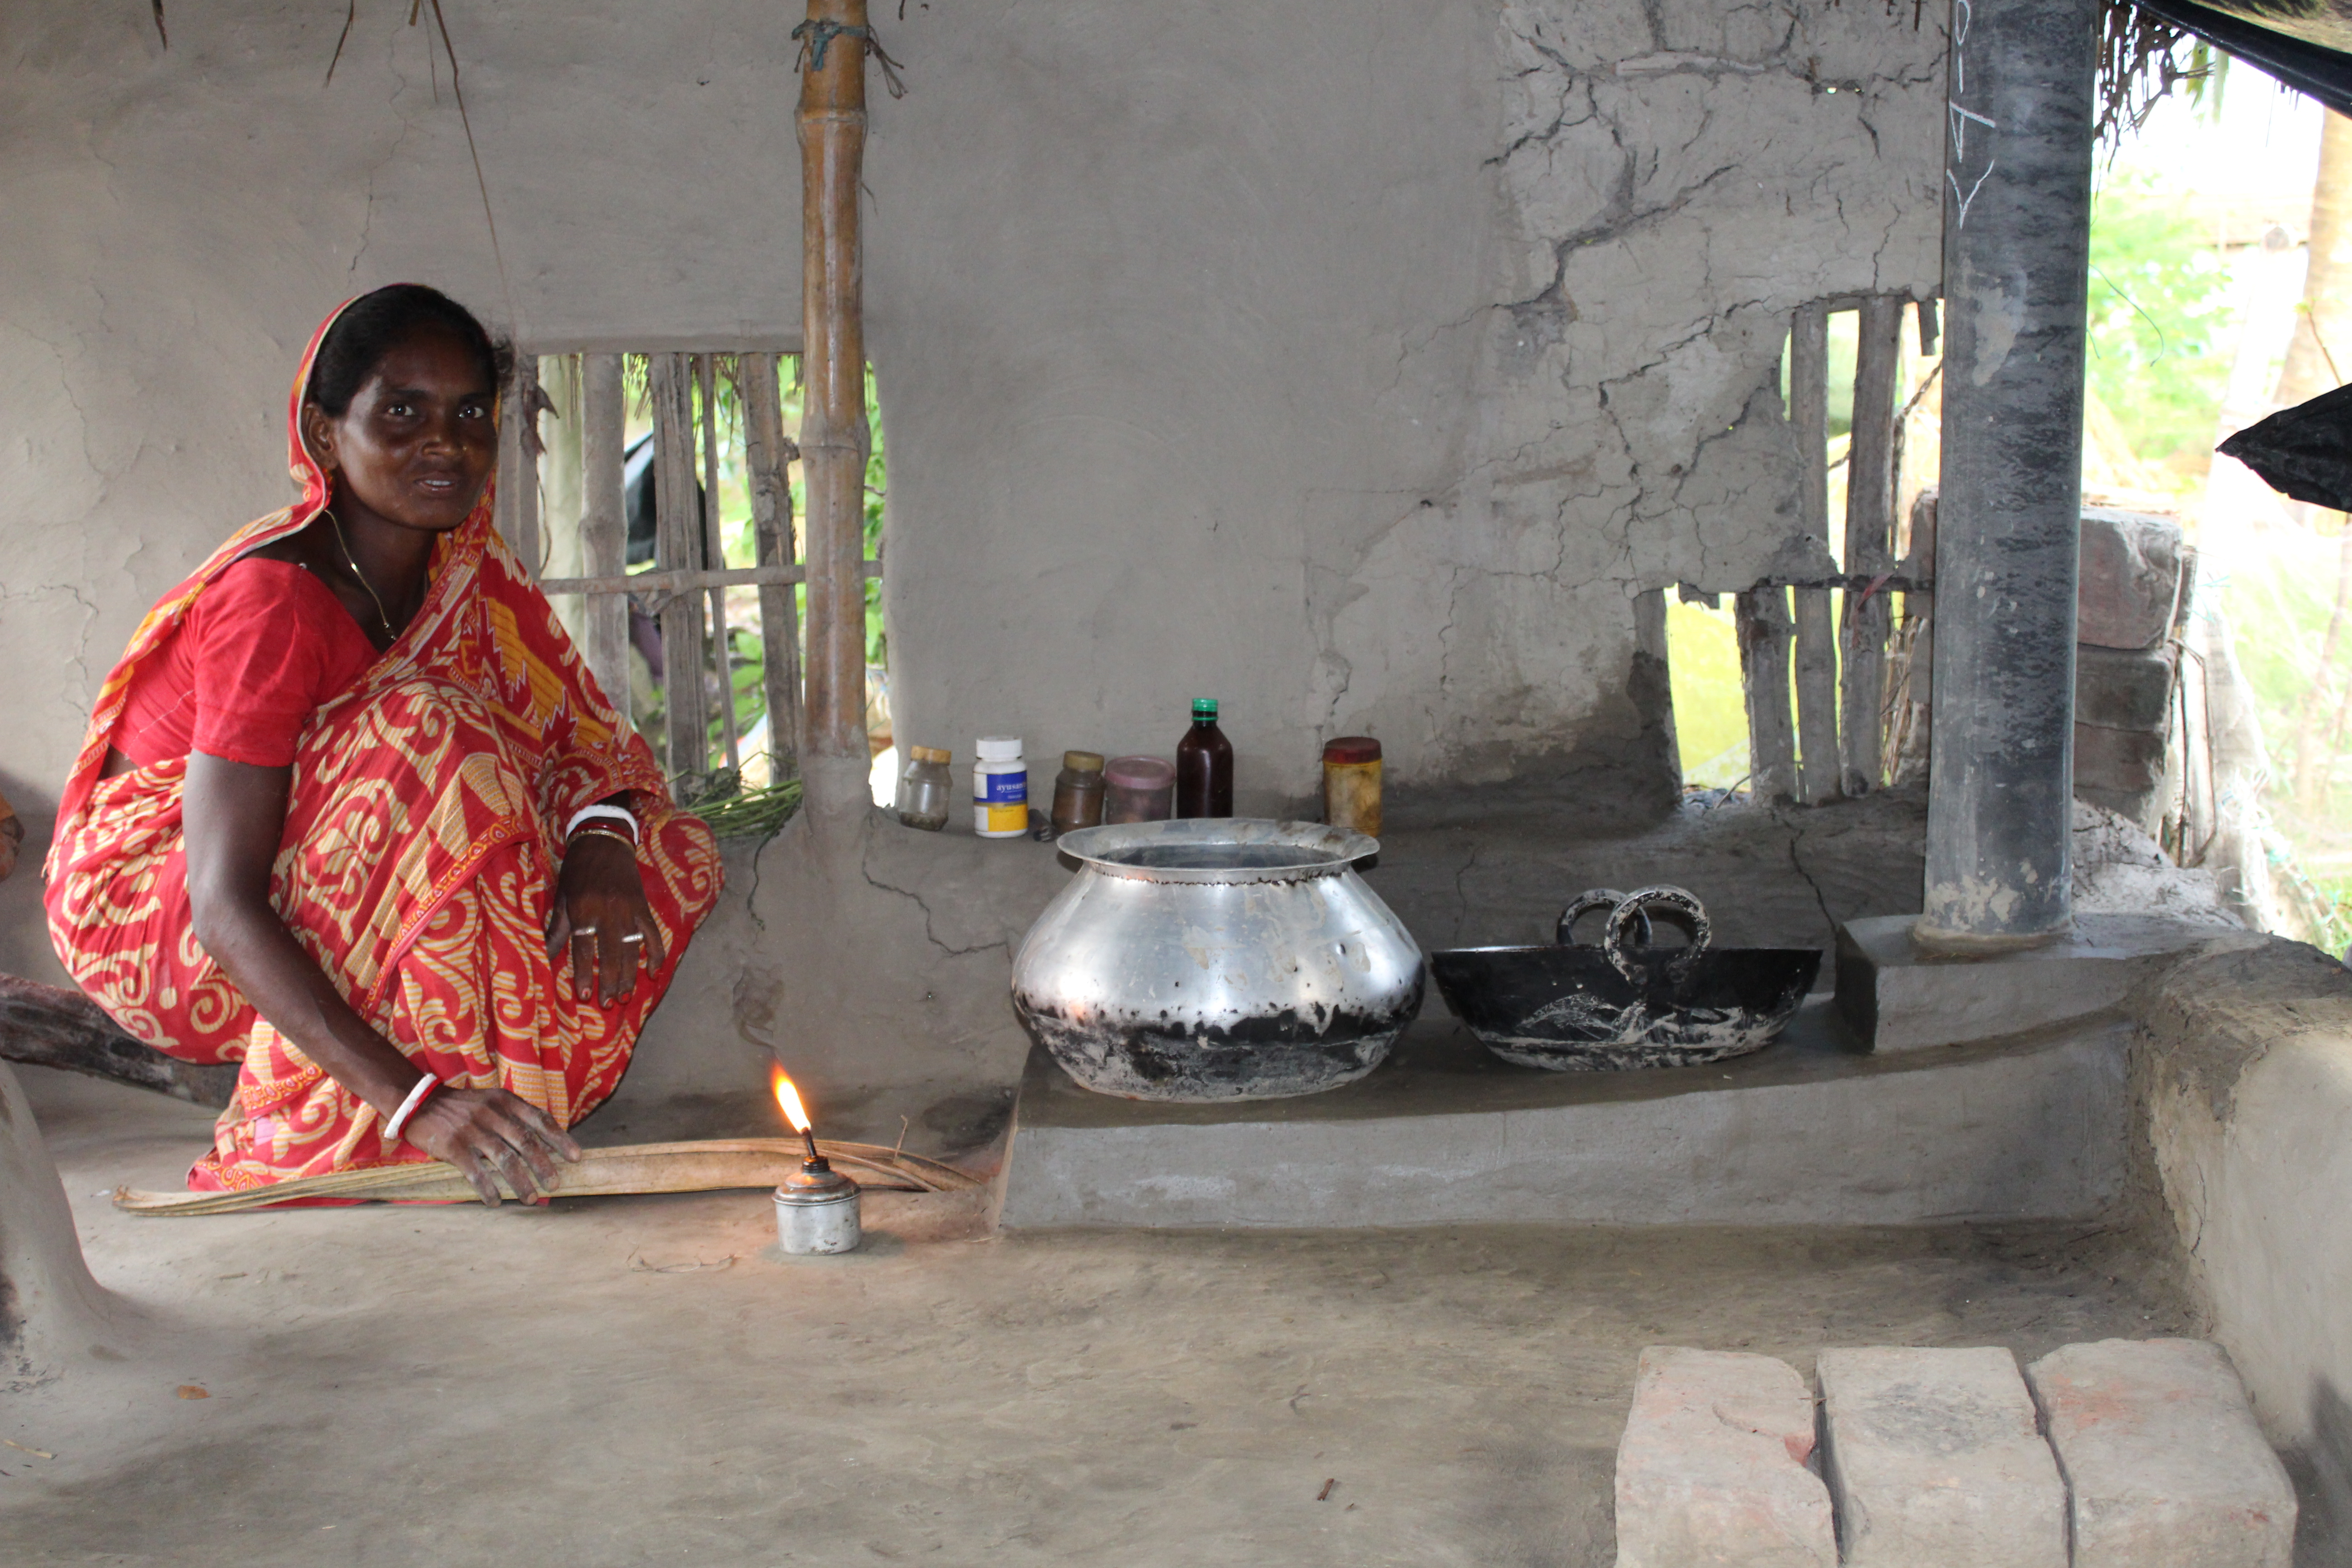 Empowering Refugee Girls at Risk in the Sundarban Region due to Climate Change